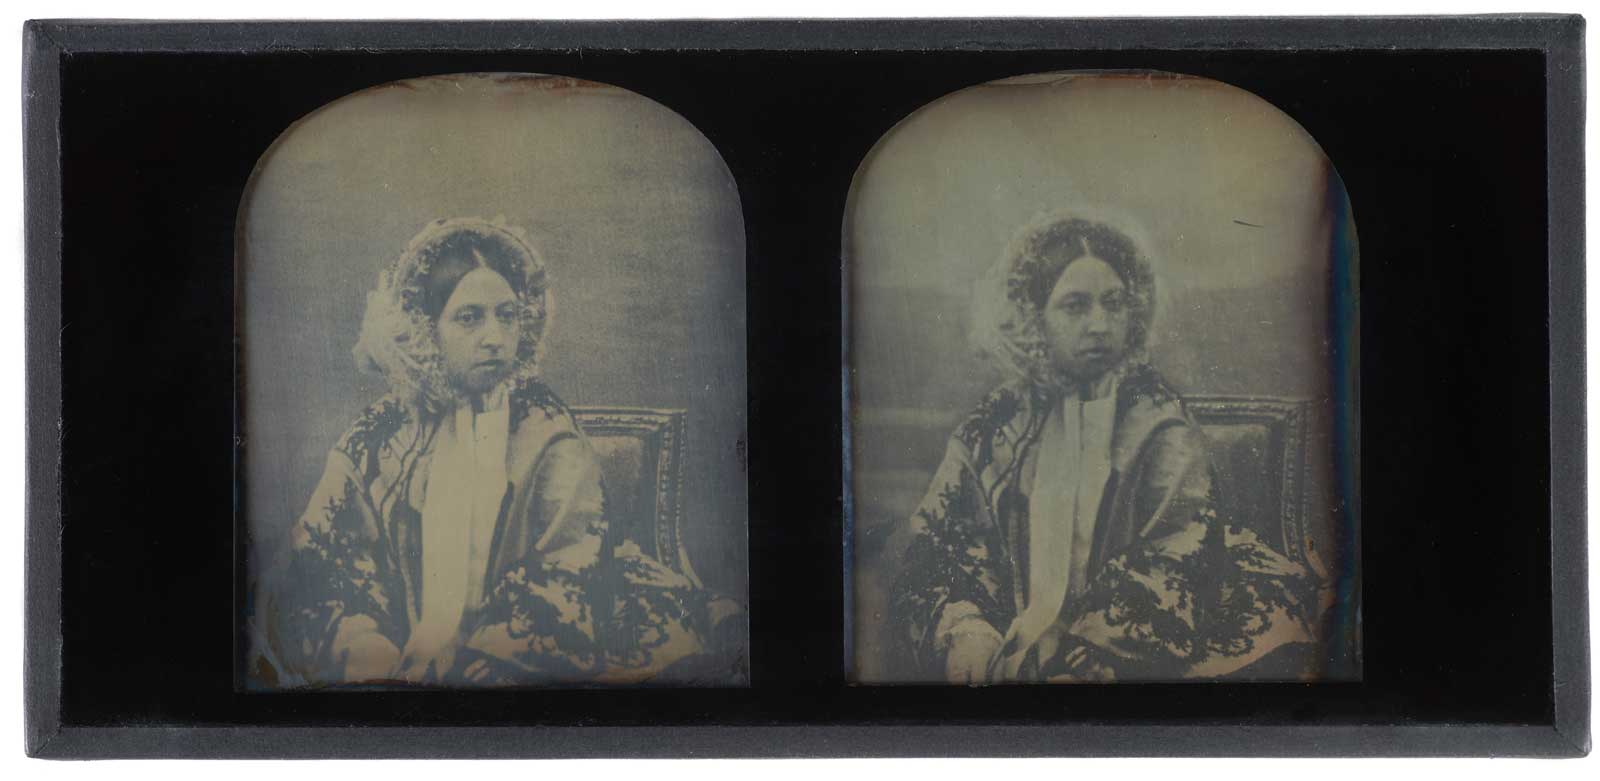 Hand-tinted stereoscopic daguerreotype of Queen Victoria, c. 1850, by Antoine Claudet.  Bookshaped, expanding case of dark blue leather. Decorated with gilt. Brass clasp. Opens to reveal two daguerreotypes and pair of binoculars. Case lined with purple velvet. Leather spine broken. One picture speckled with black.